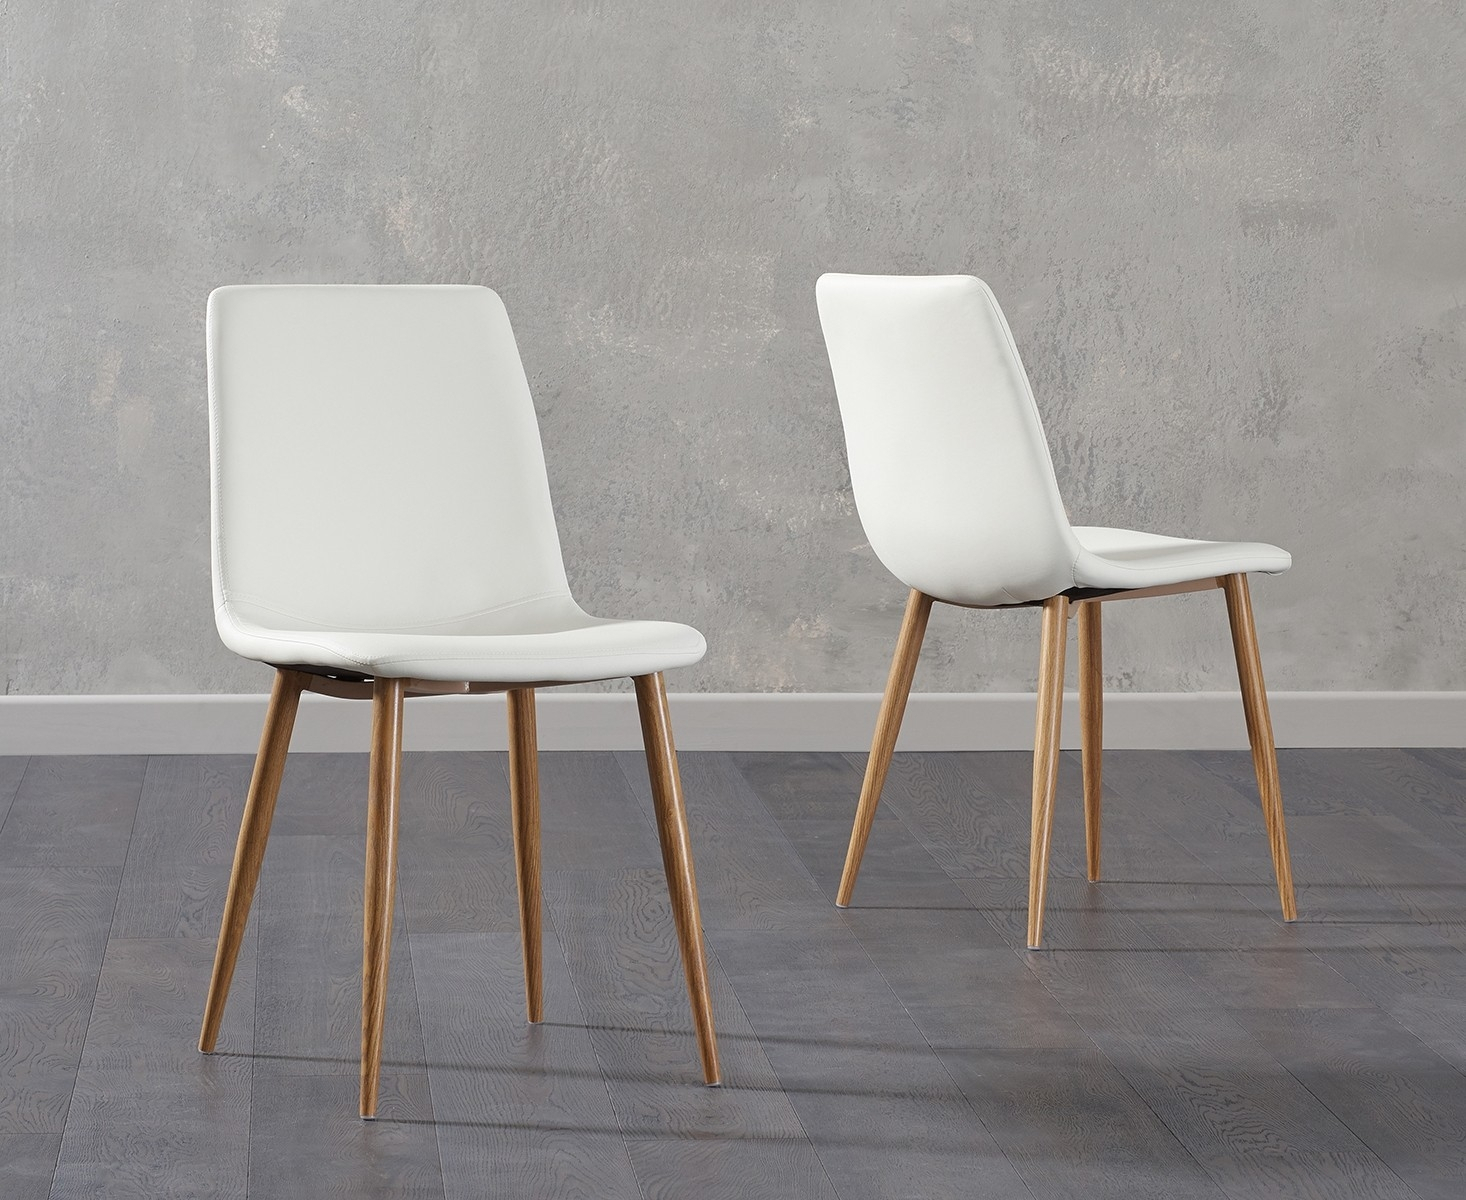 Mark Harris Hatfield White Faux Leather Dining Chair With Wooden Legs (Pair) – Cfs Furniture Uk Inside Carlton Wood Leg Upholstered Dining Chairs (View 15 of 15)